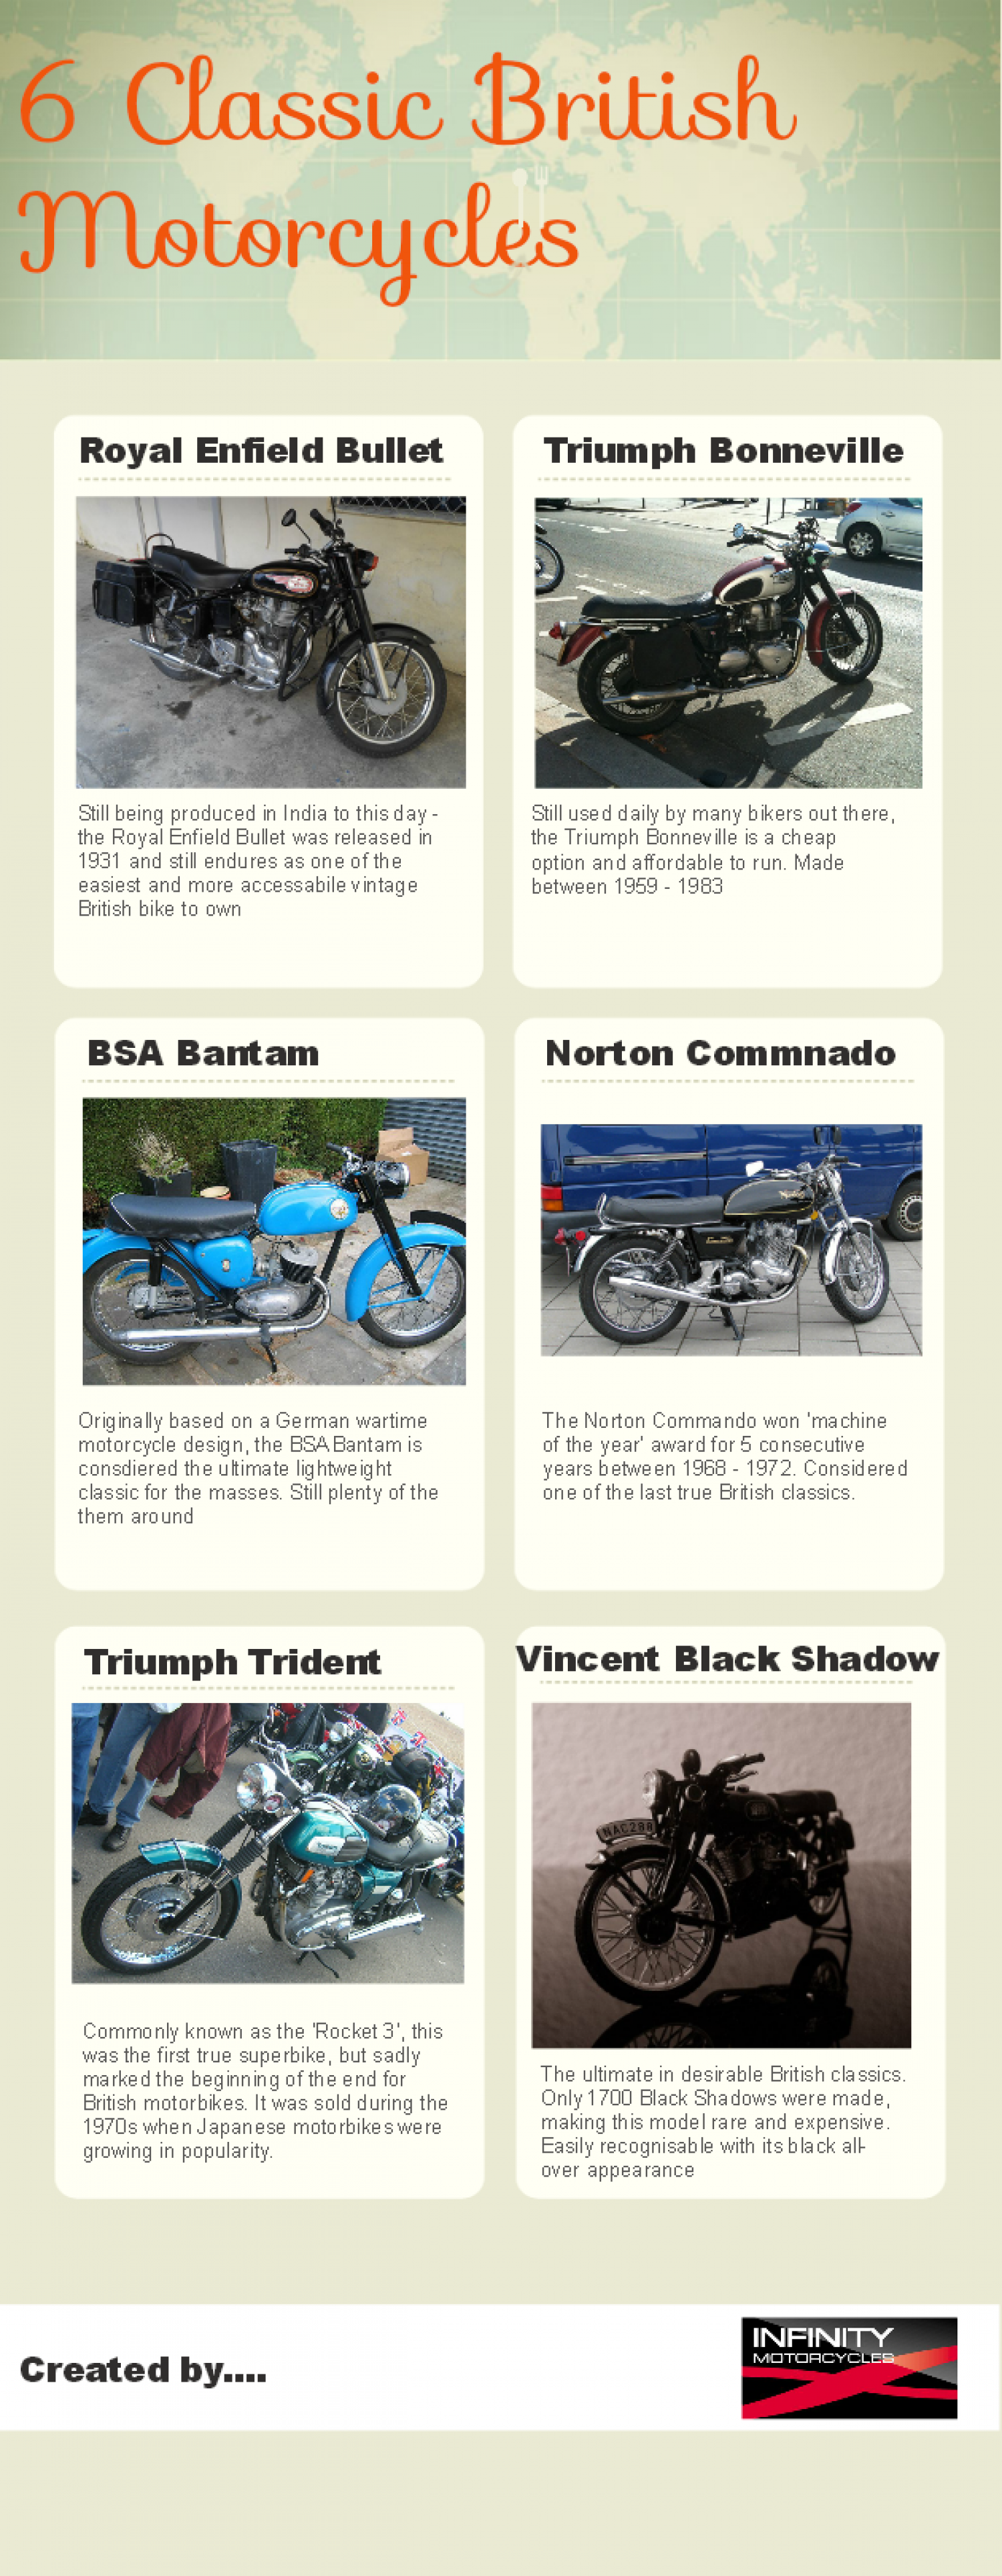 6 Classic British Motorcycles Infographic